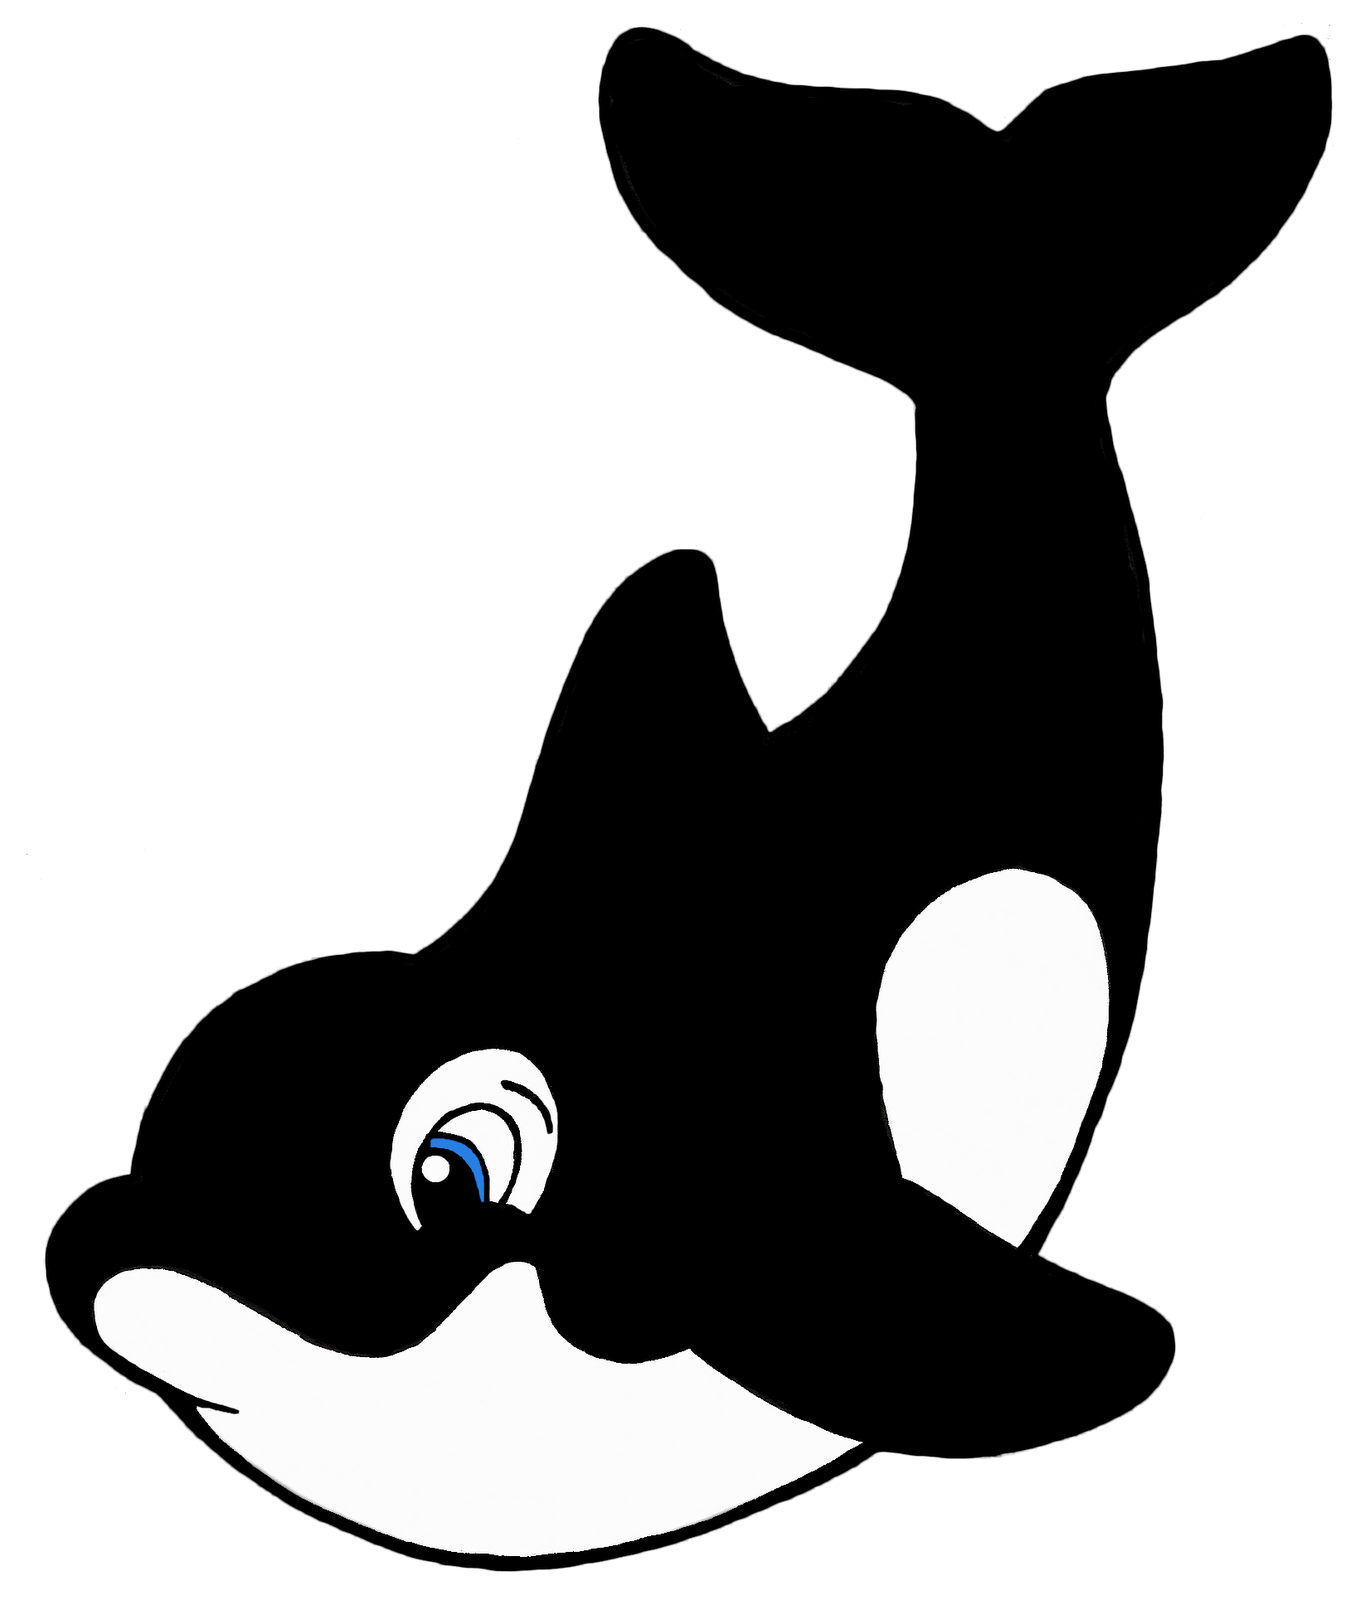 1360x1600 Whale Black And White Cartoon Killer Whale Free Download Clip Art